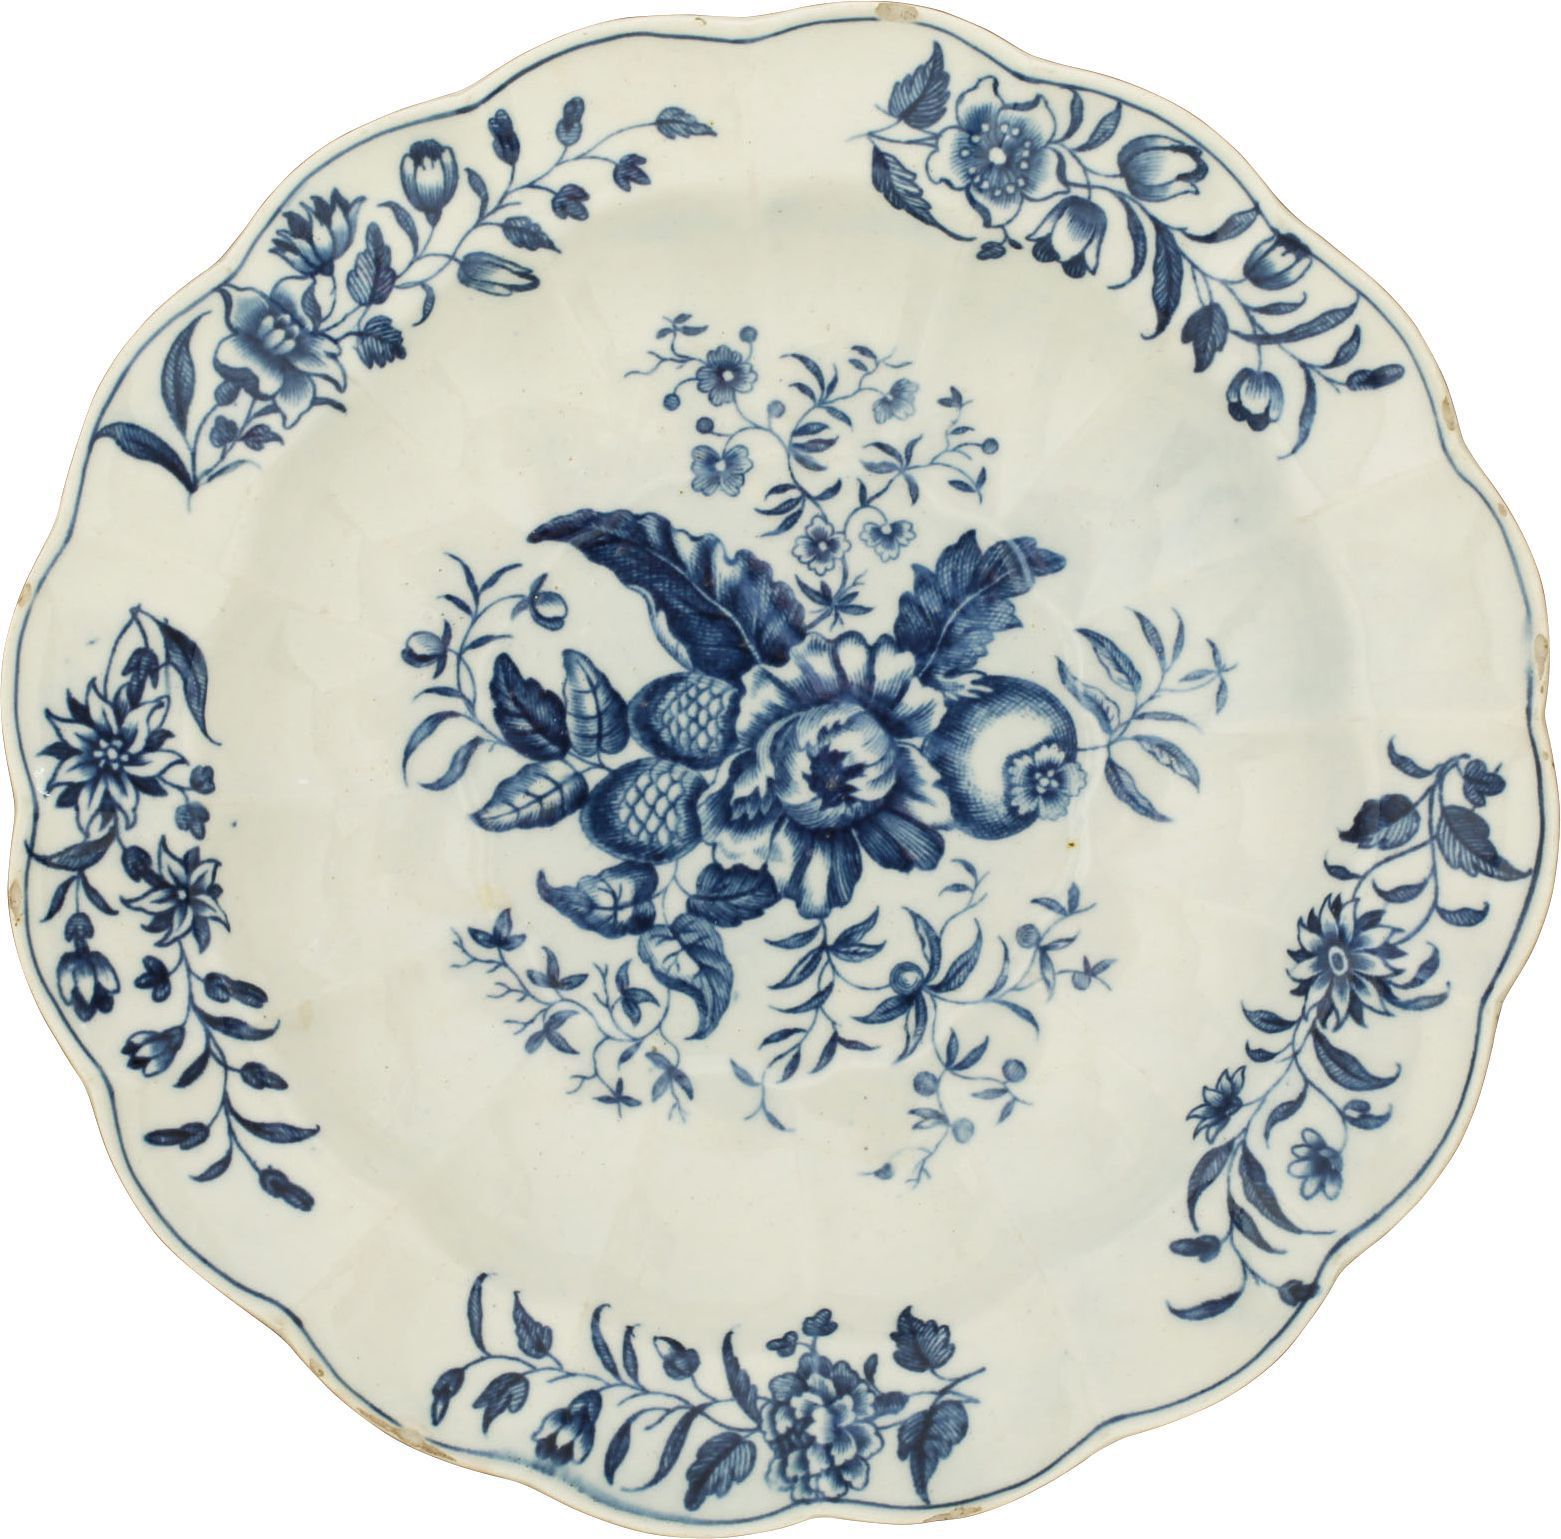 FIRST PERIOD WORCESTER DISH C.1770 - Fagan Arms